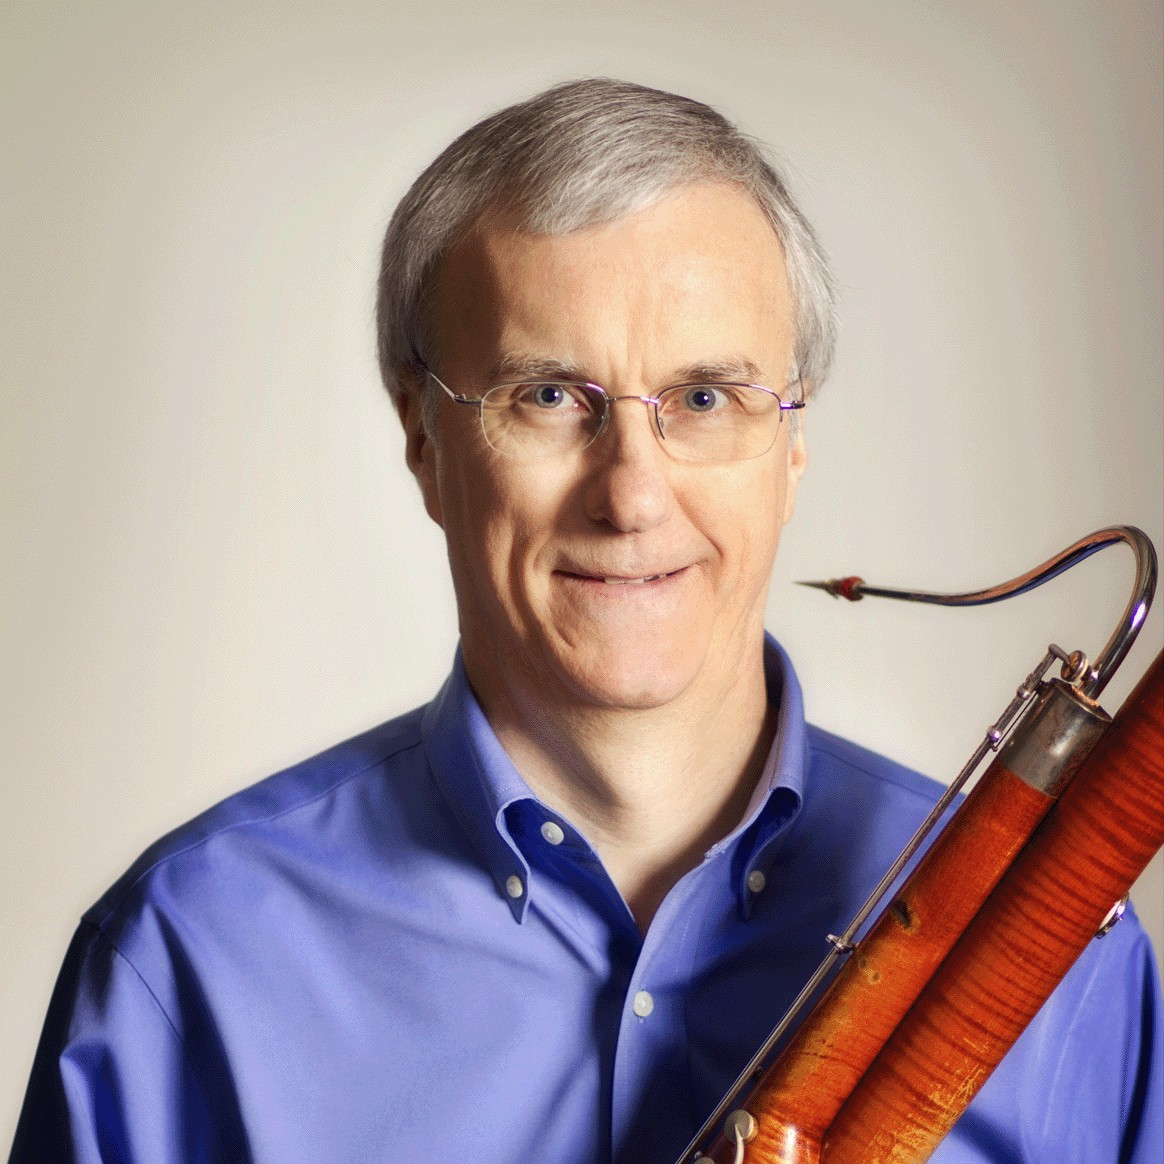 Headshot of Penn State School of Music bassoon professor Daryl Duran